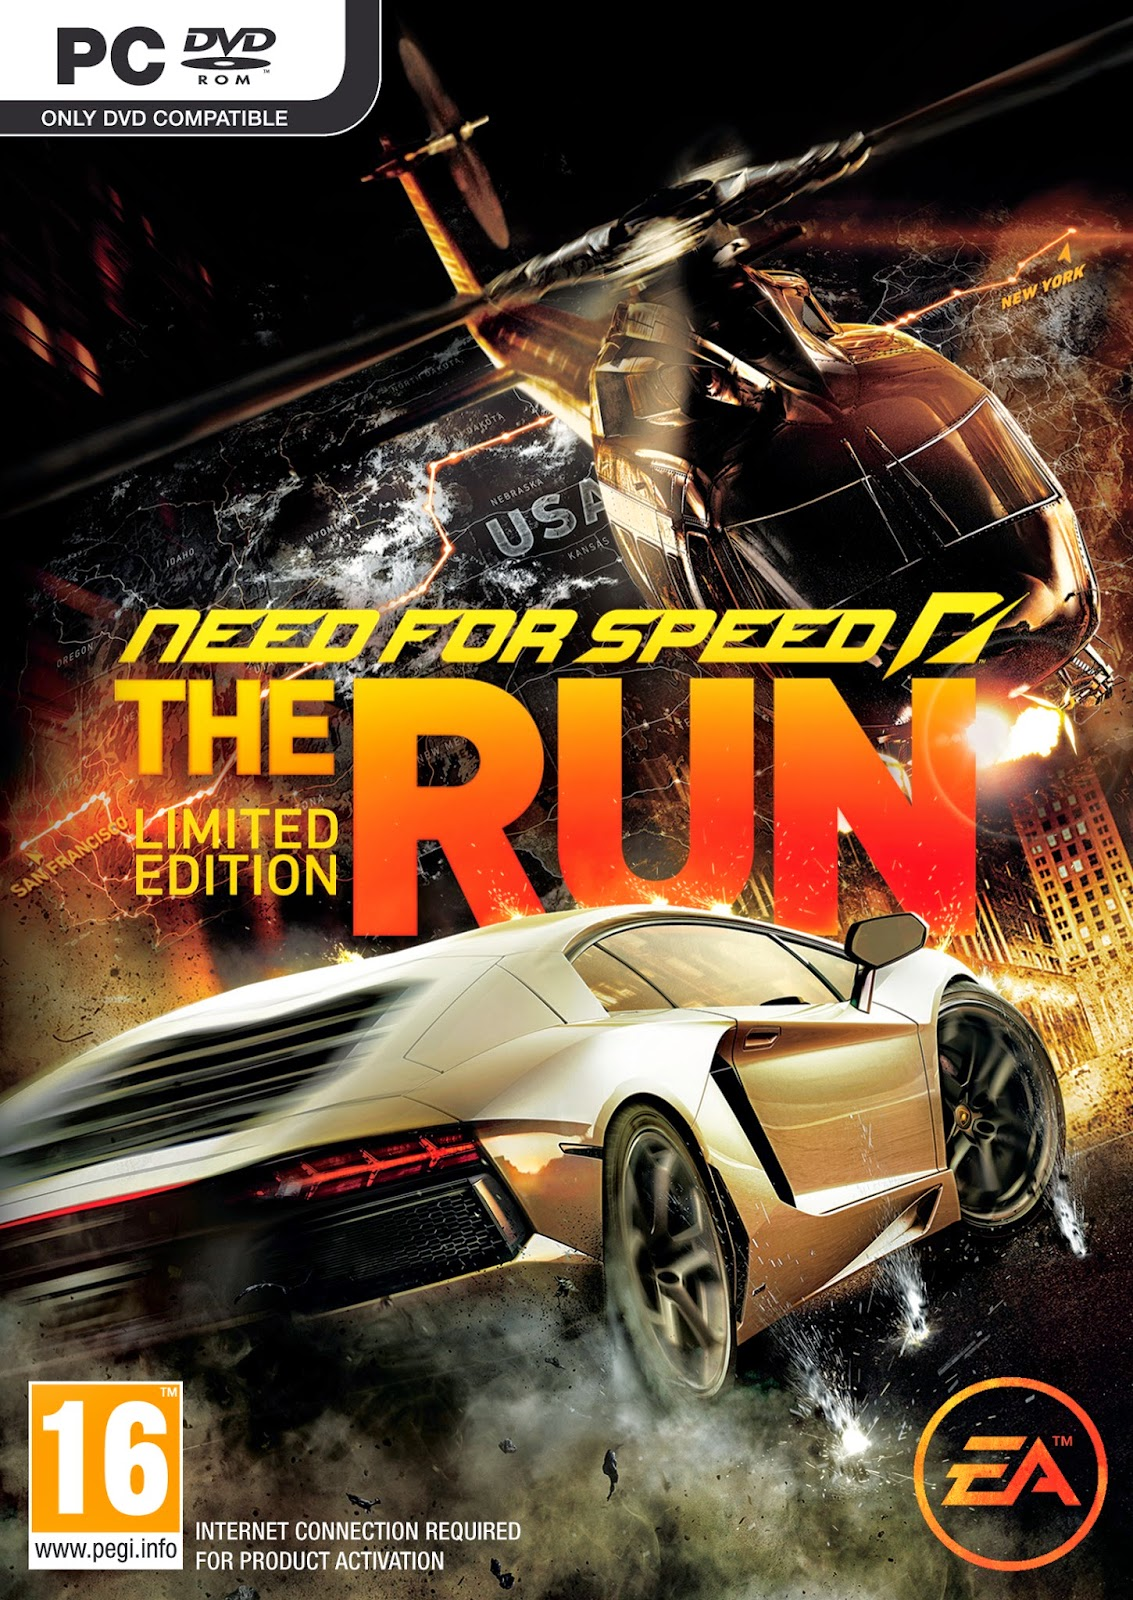 http://www.amazon.de/Need-Speed-The-Limited-Edition/dp/B004Y5EVT8/ref=sr_1_5?ie=UTF8&qid=1406038546&sr=8-5&keywords=Need+For+Speed+-+The+Run